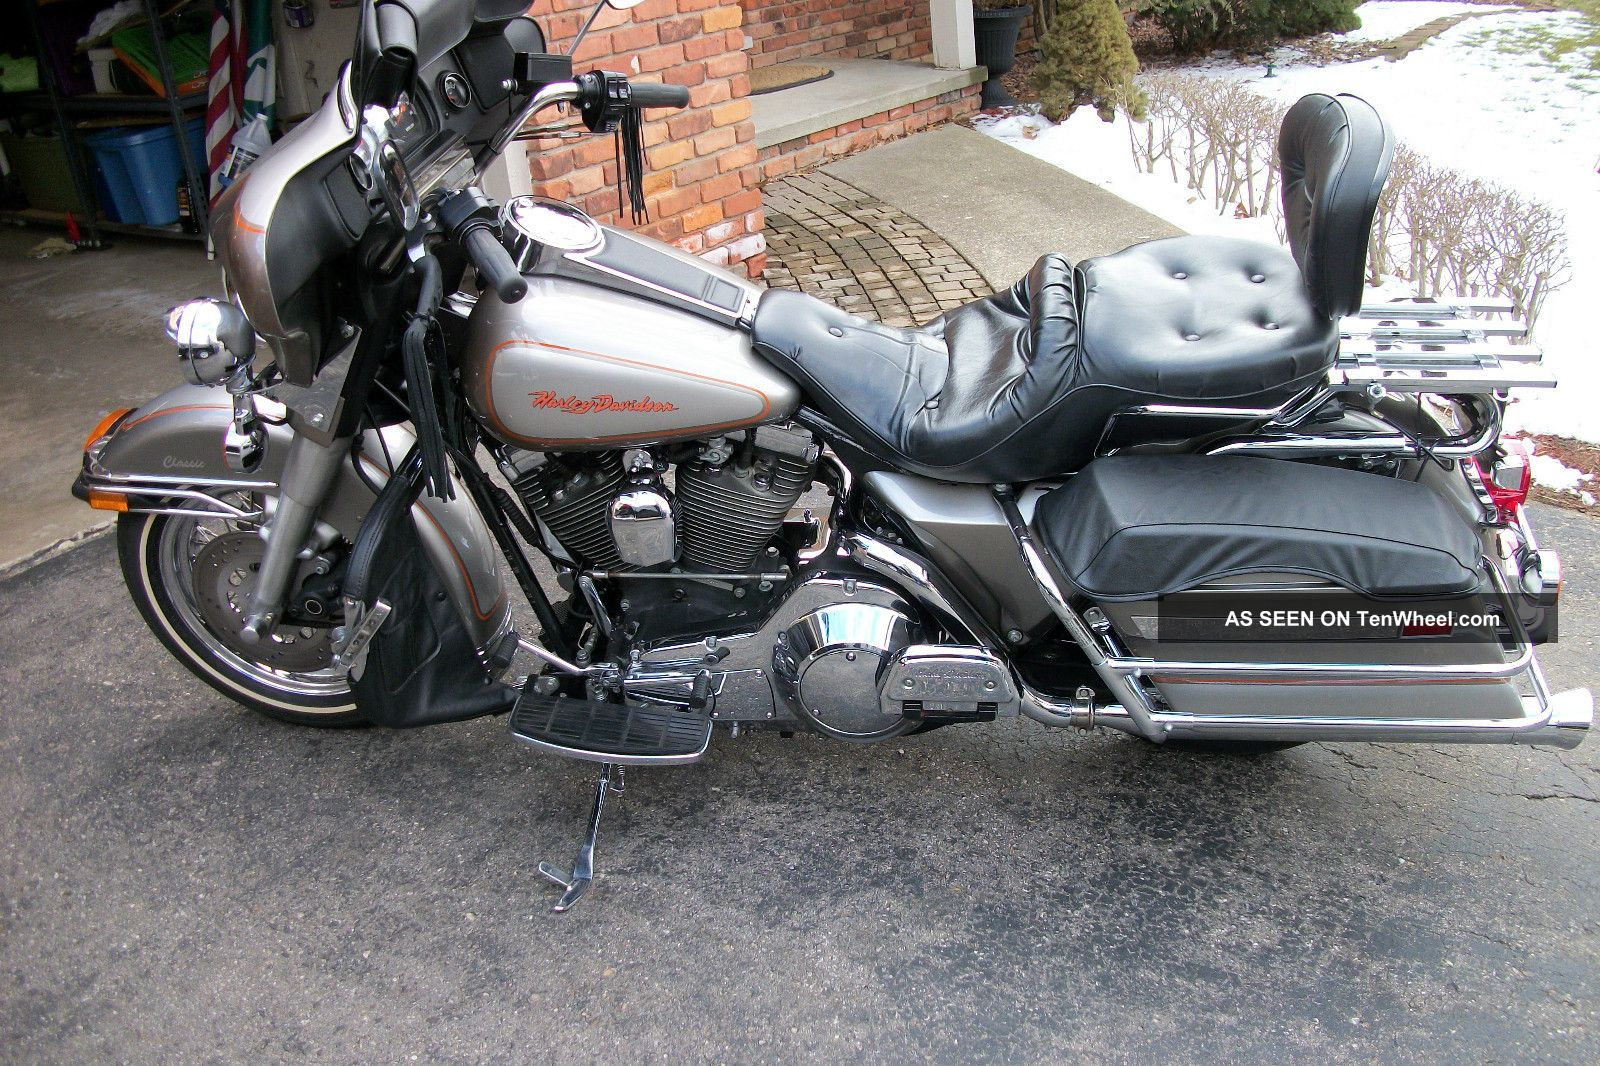 Harley Davidson Electra Glide Classic 1992 Flh Touring photo 11